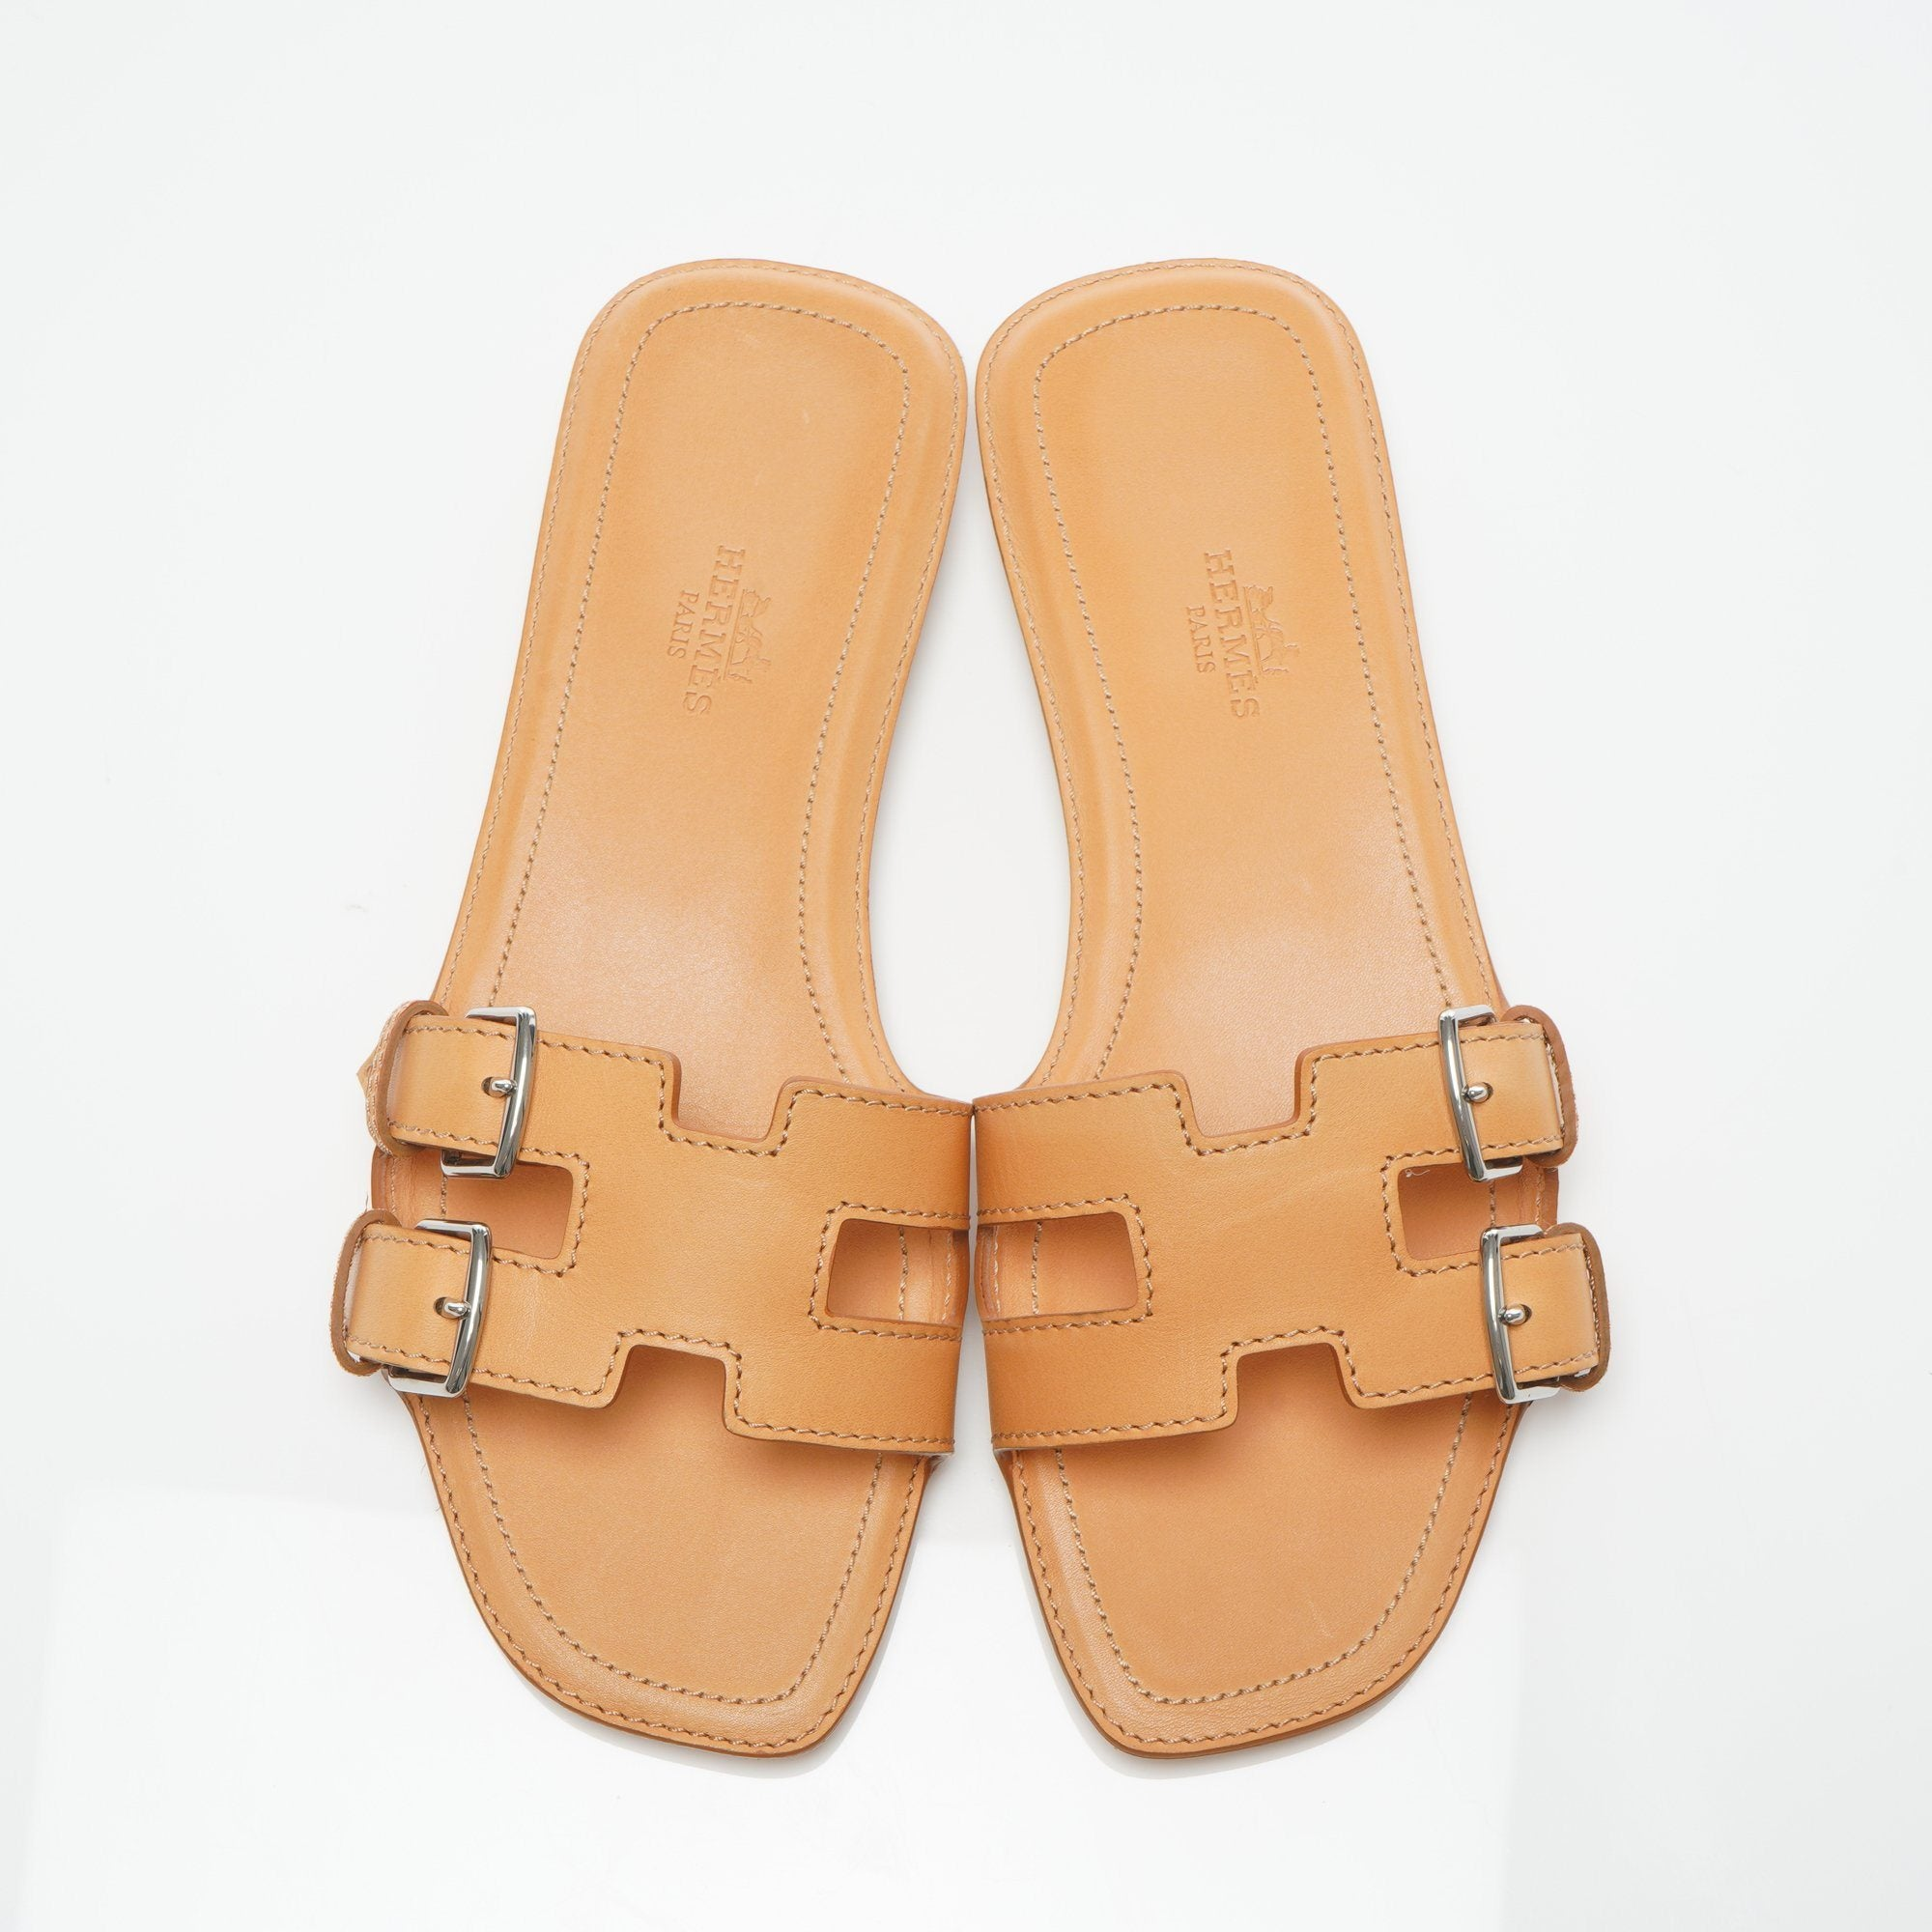 Hermes Remake Leather Mules